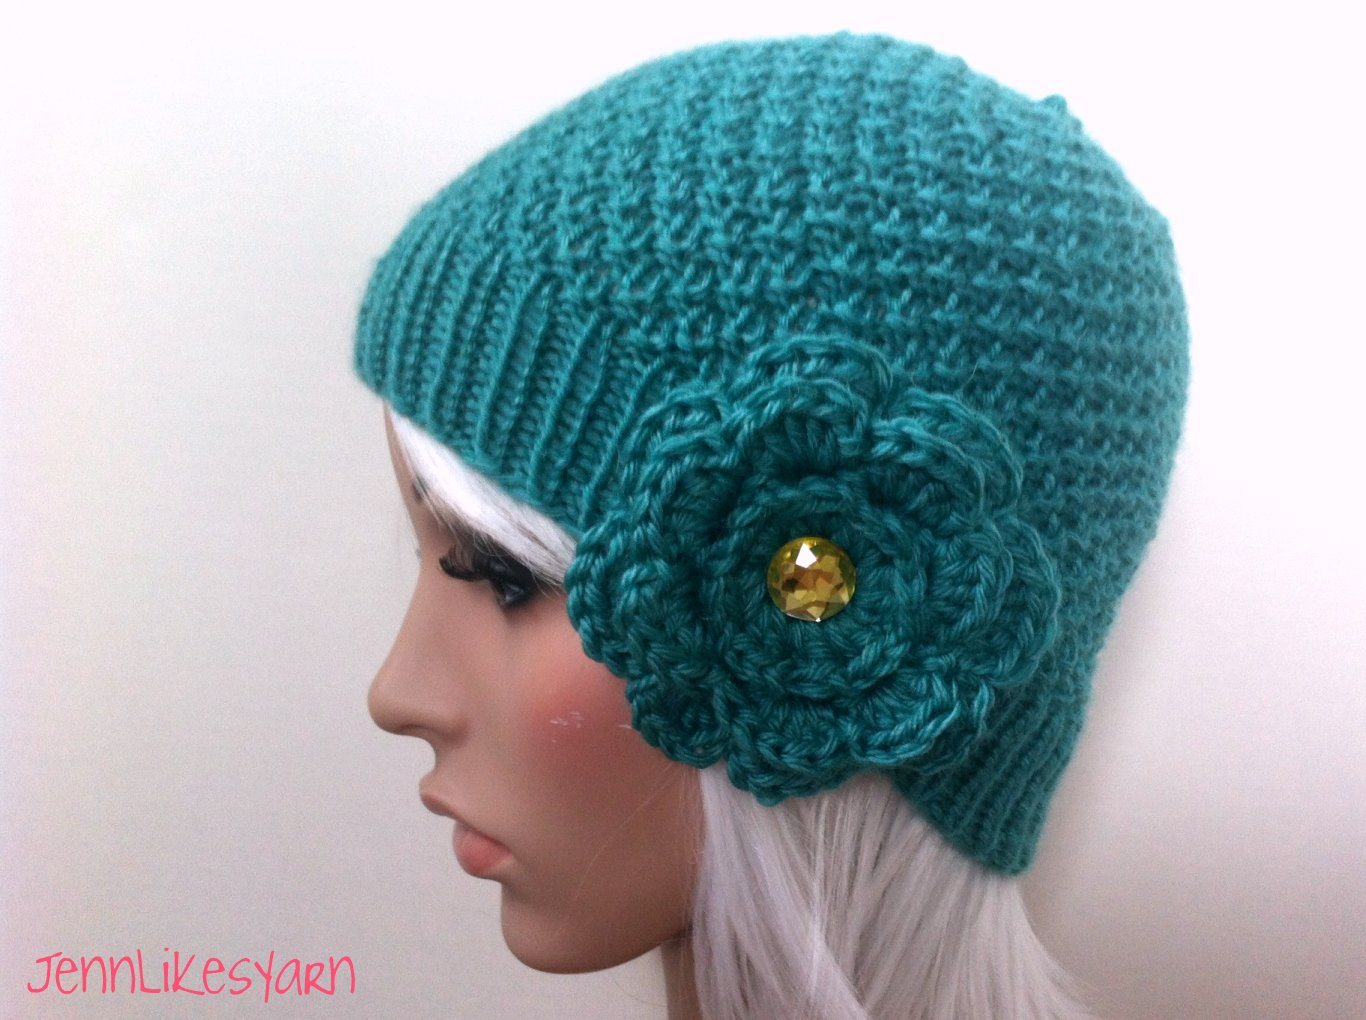 finished: knit double moss stitch hat with flower - Jenn